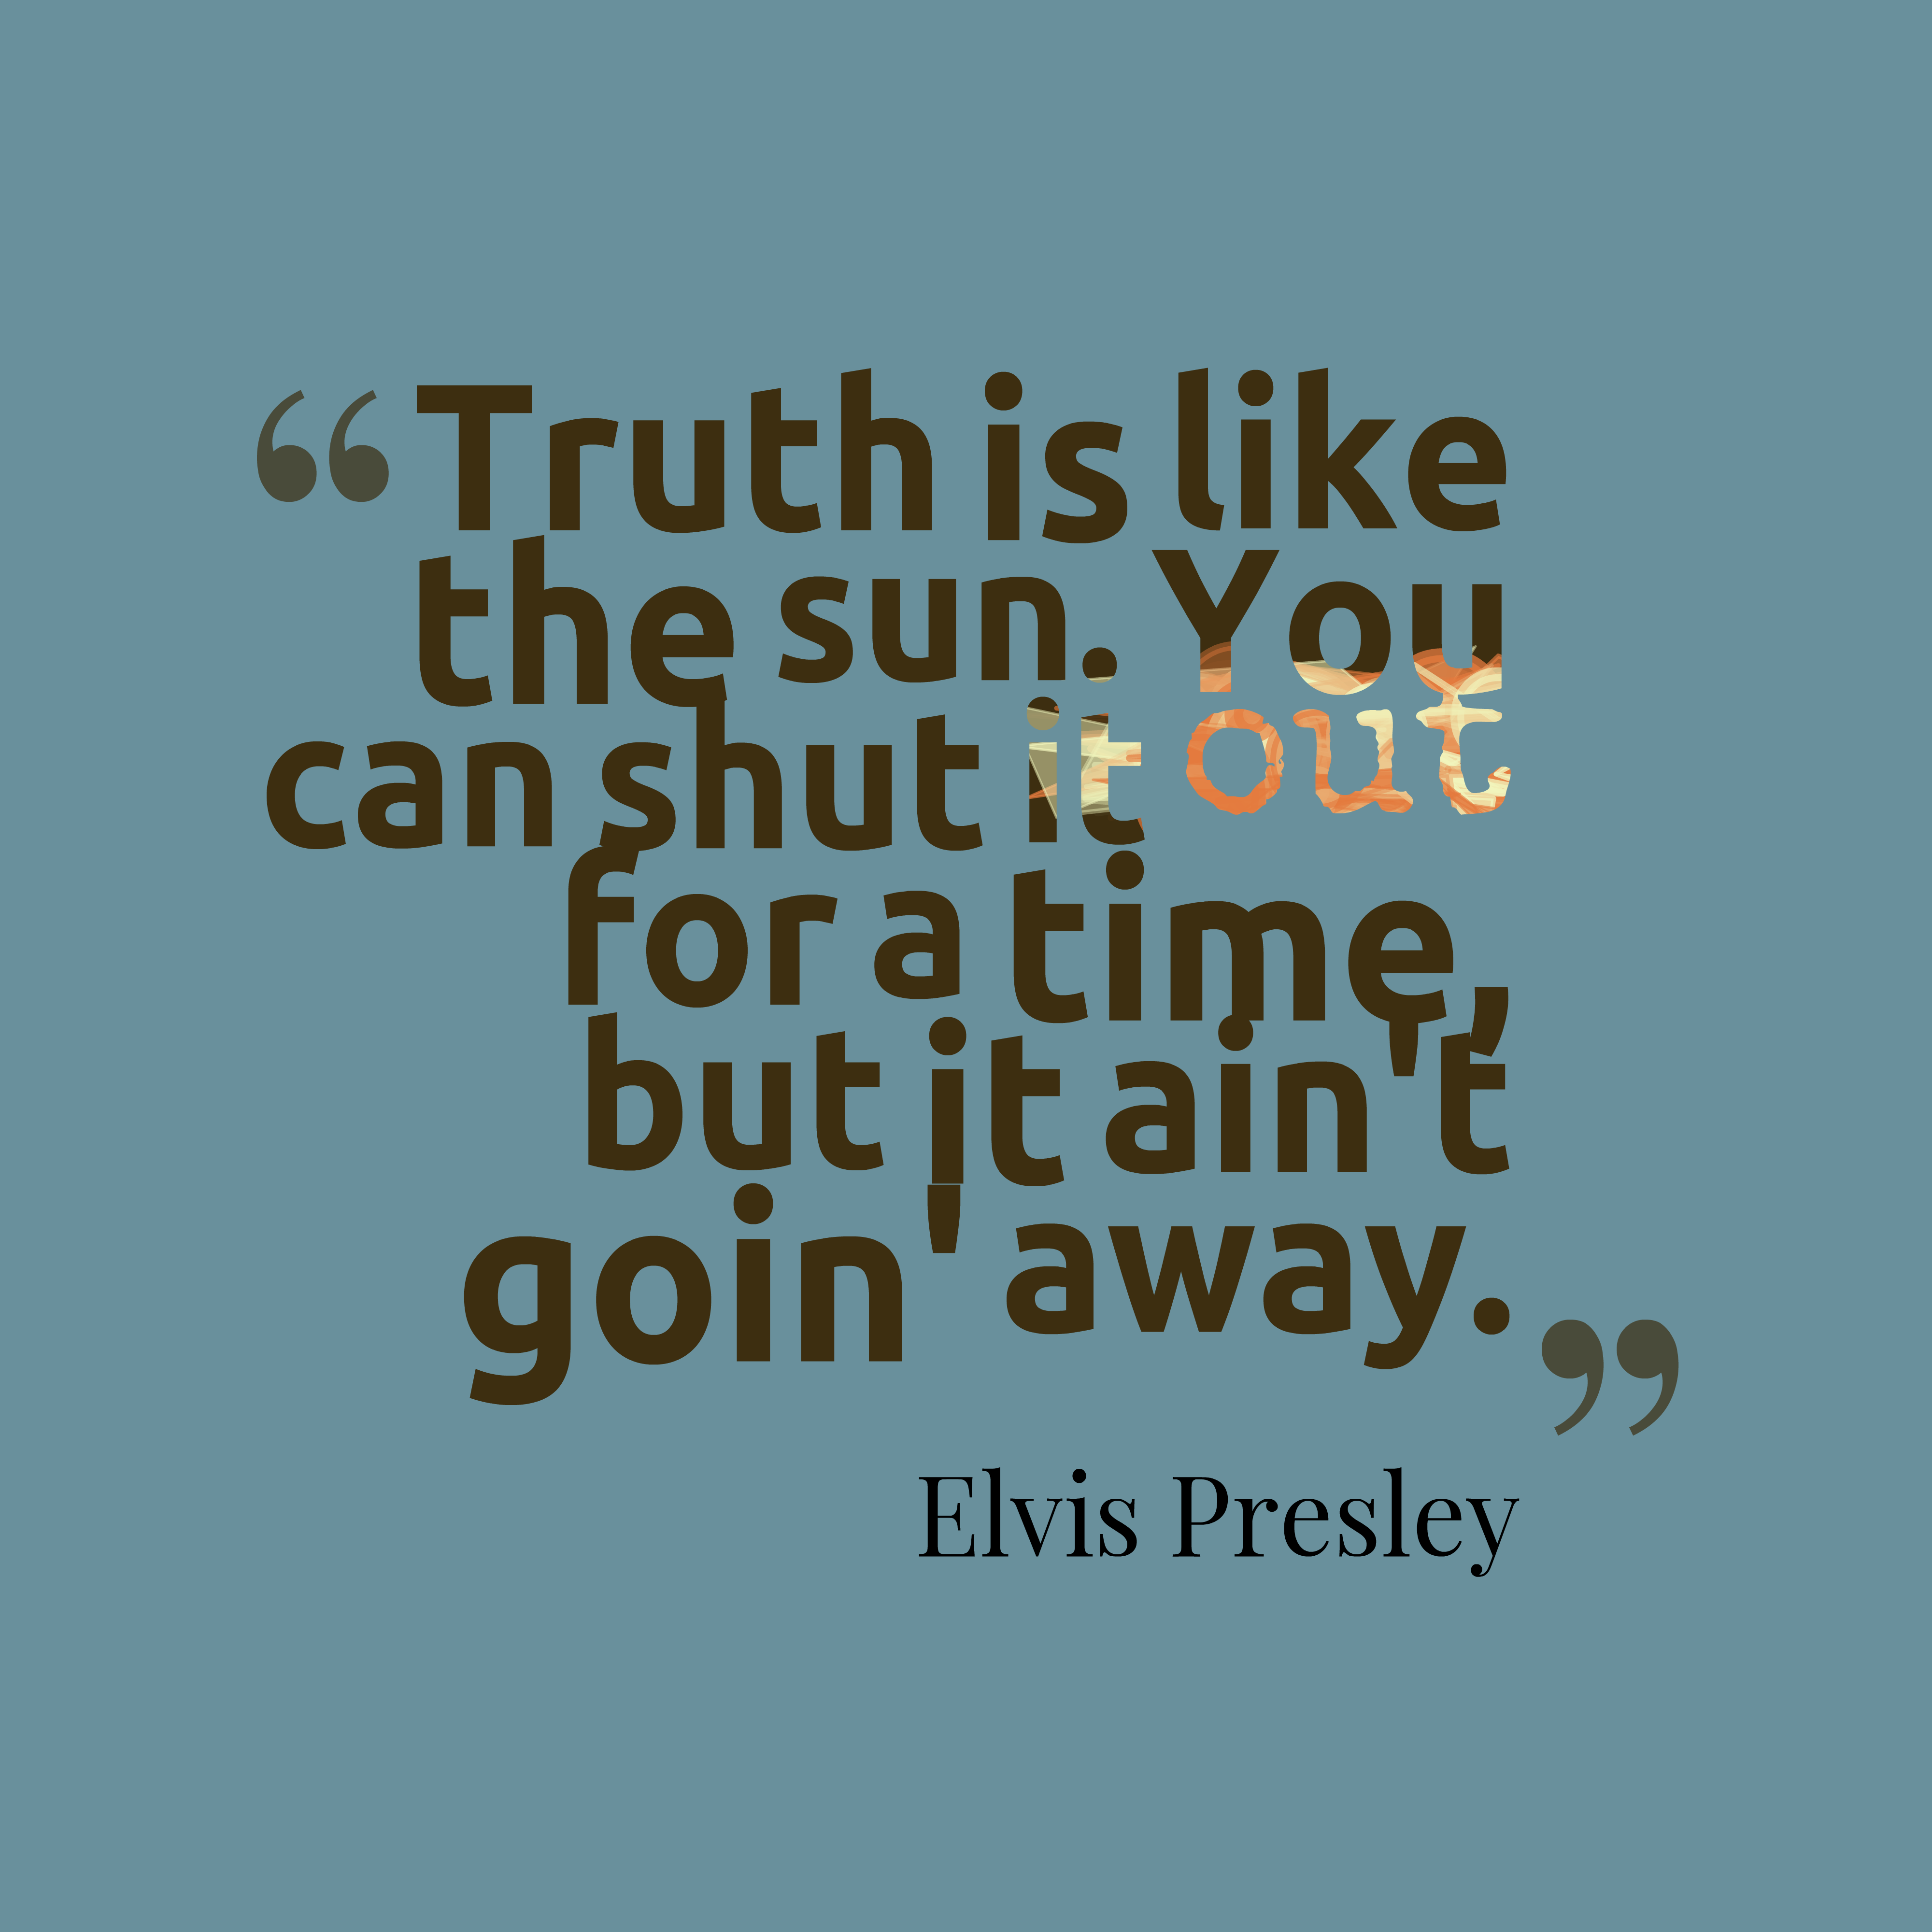 Elvis Presley Quote About Truth